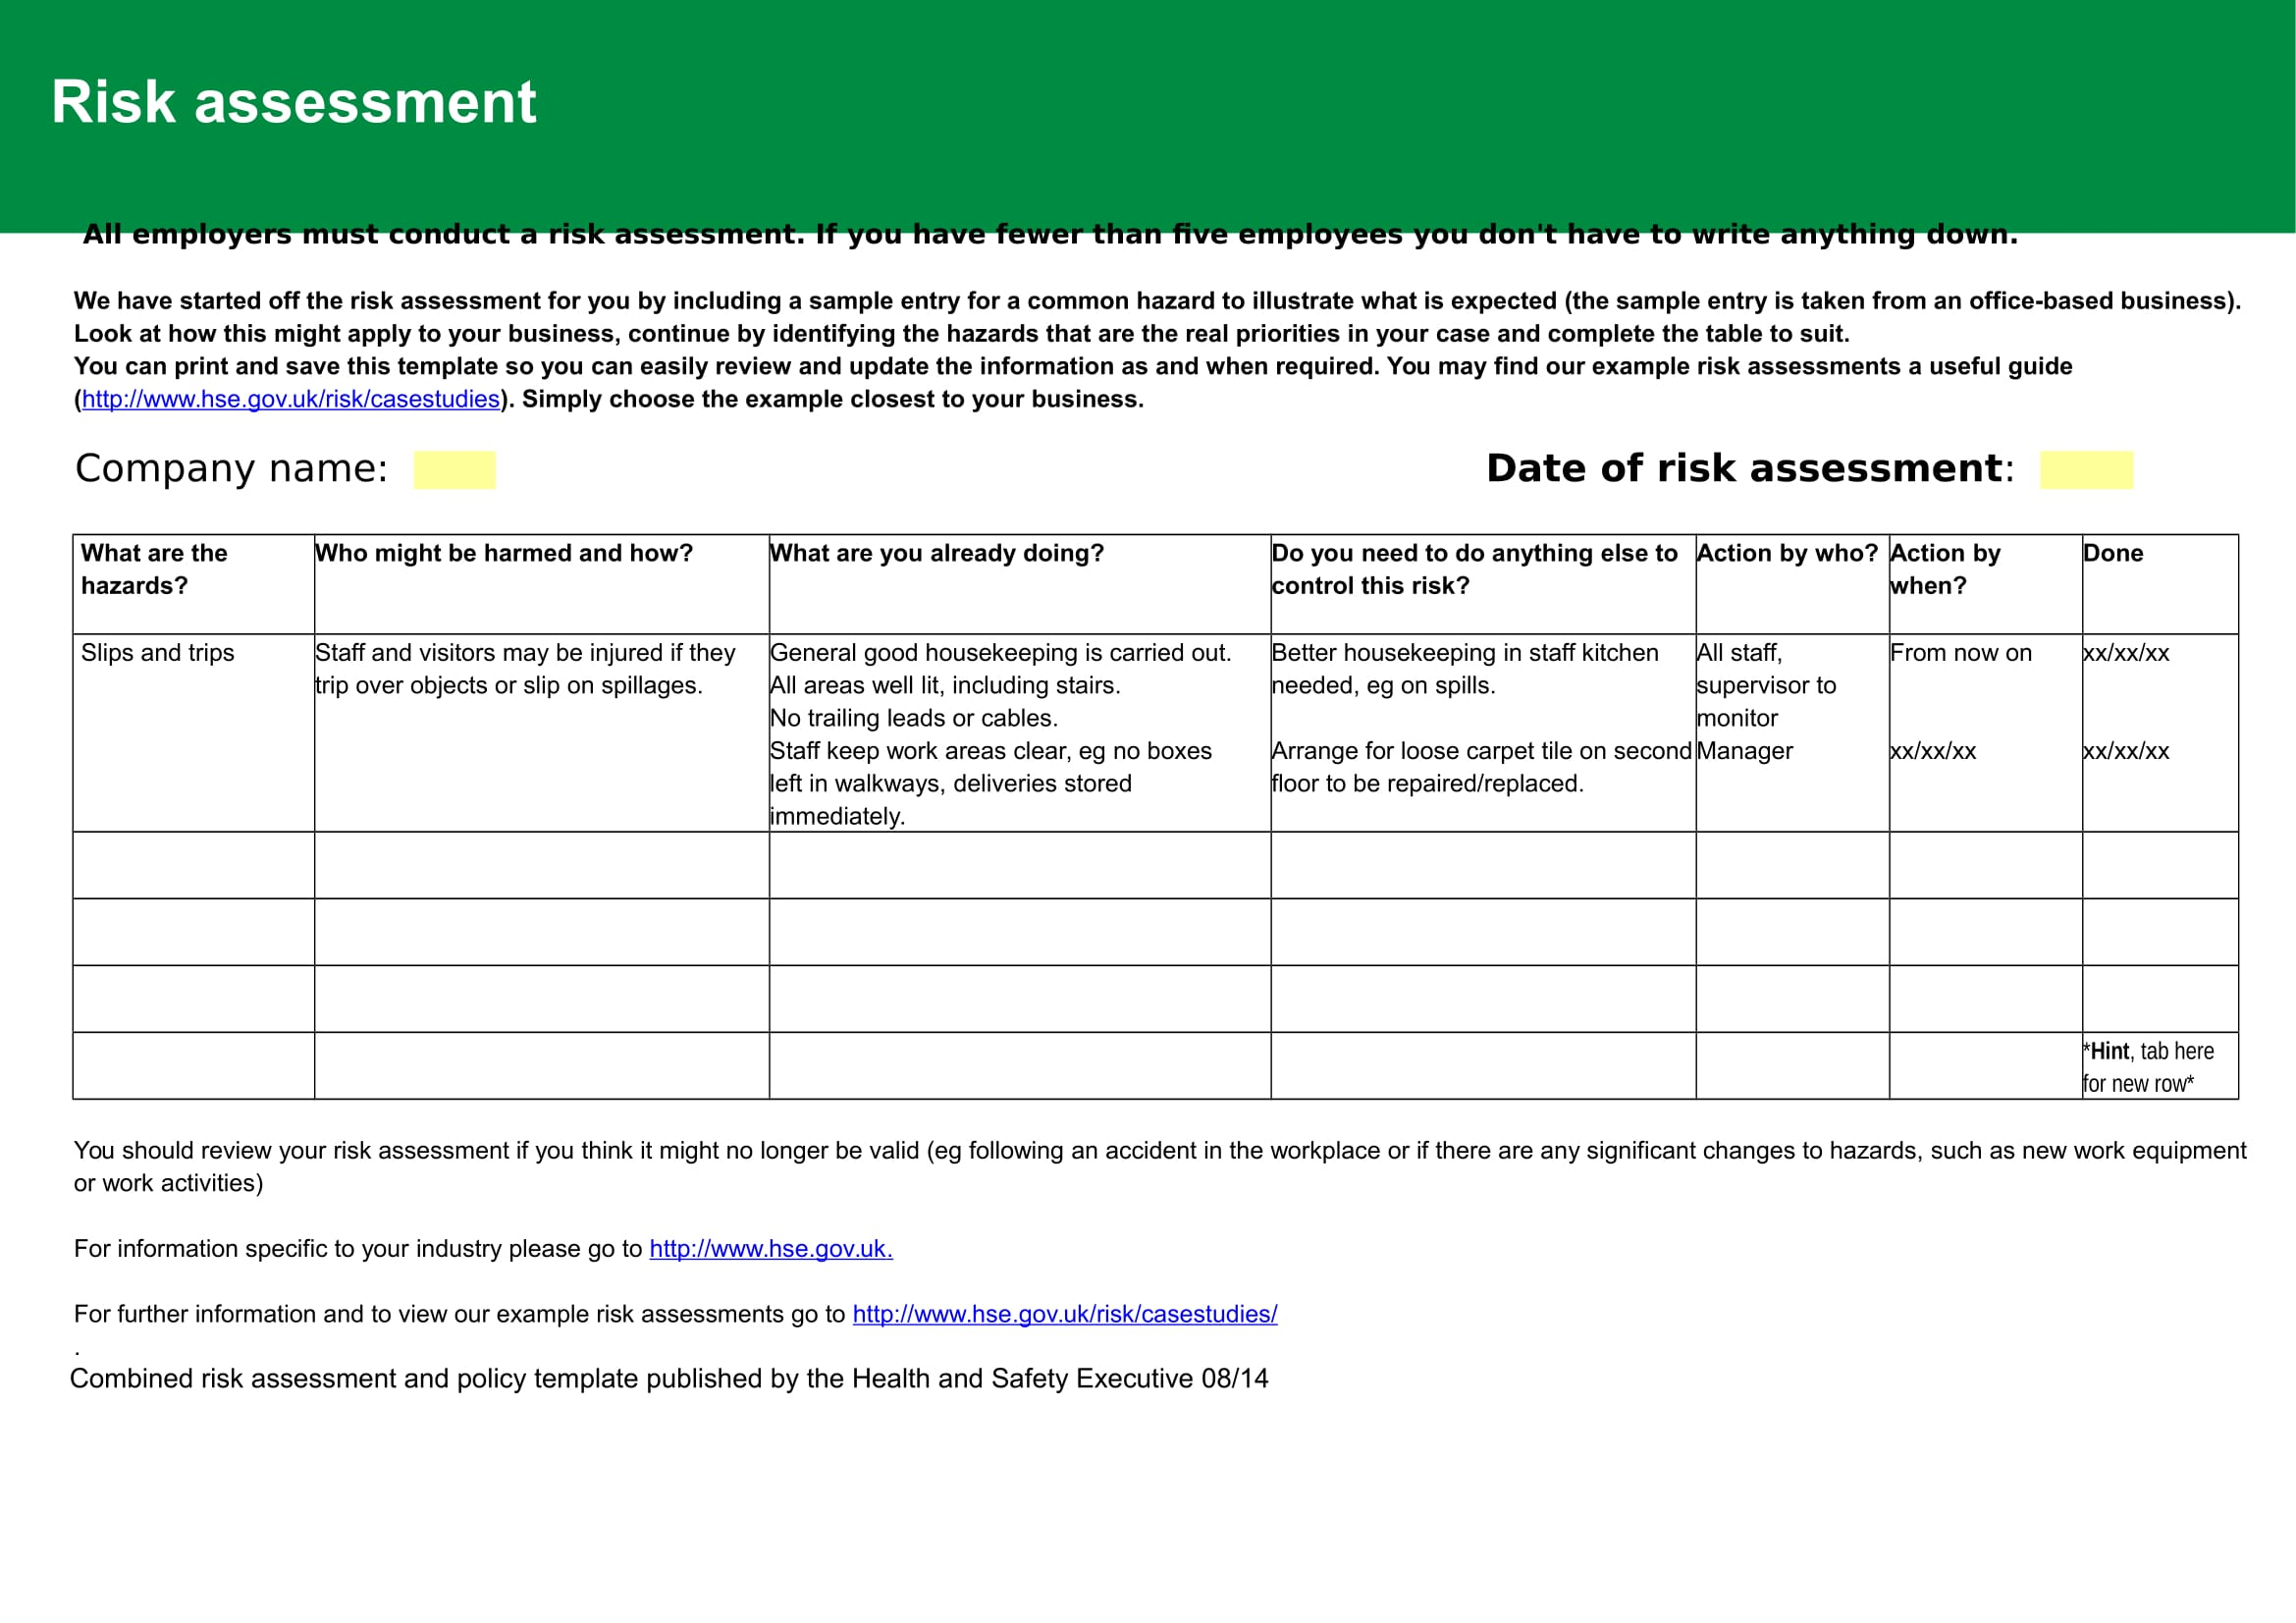 8 risk assessment and policy template 2